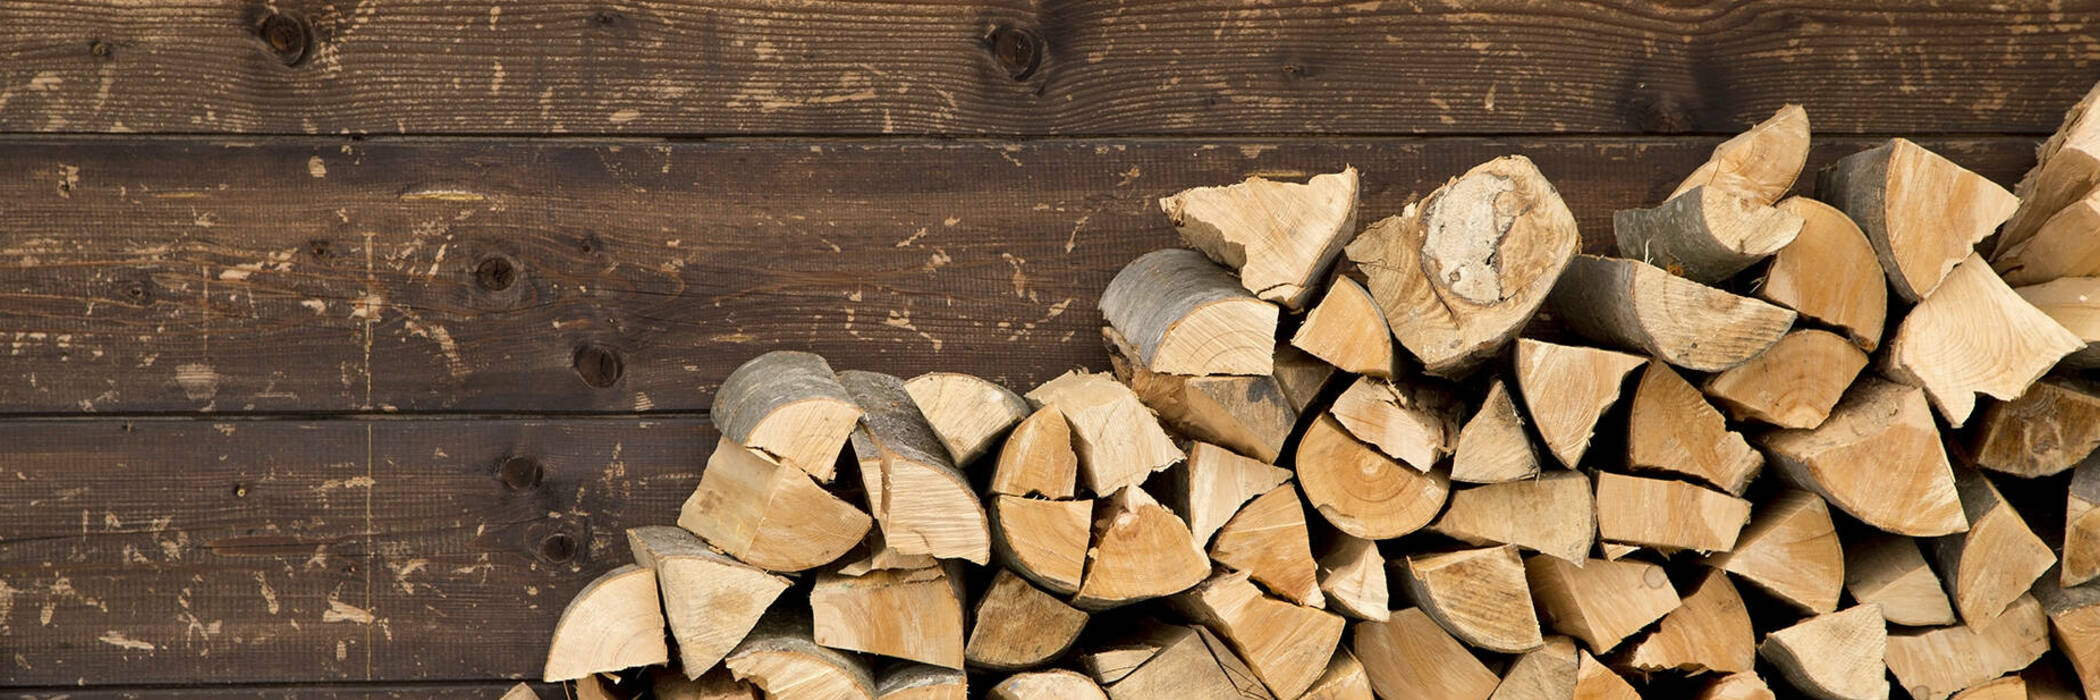 Firewood stacked against wall.